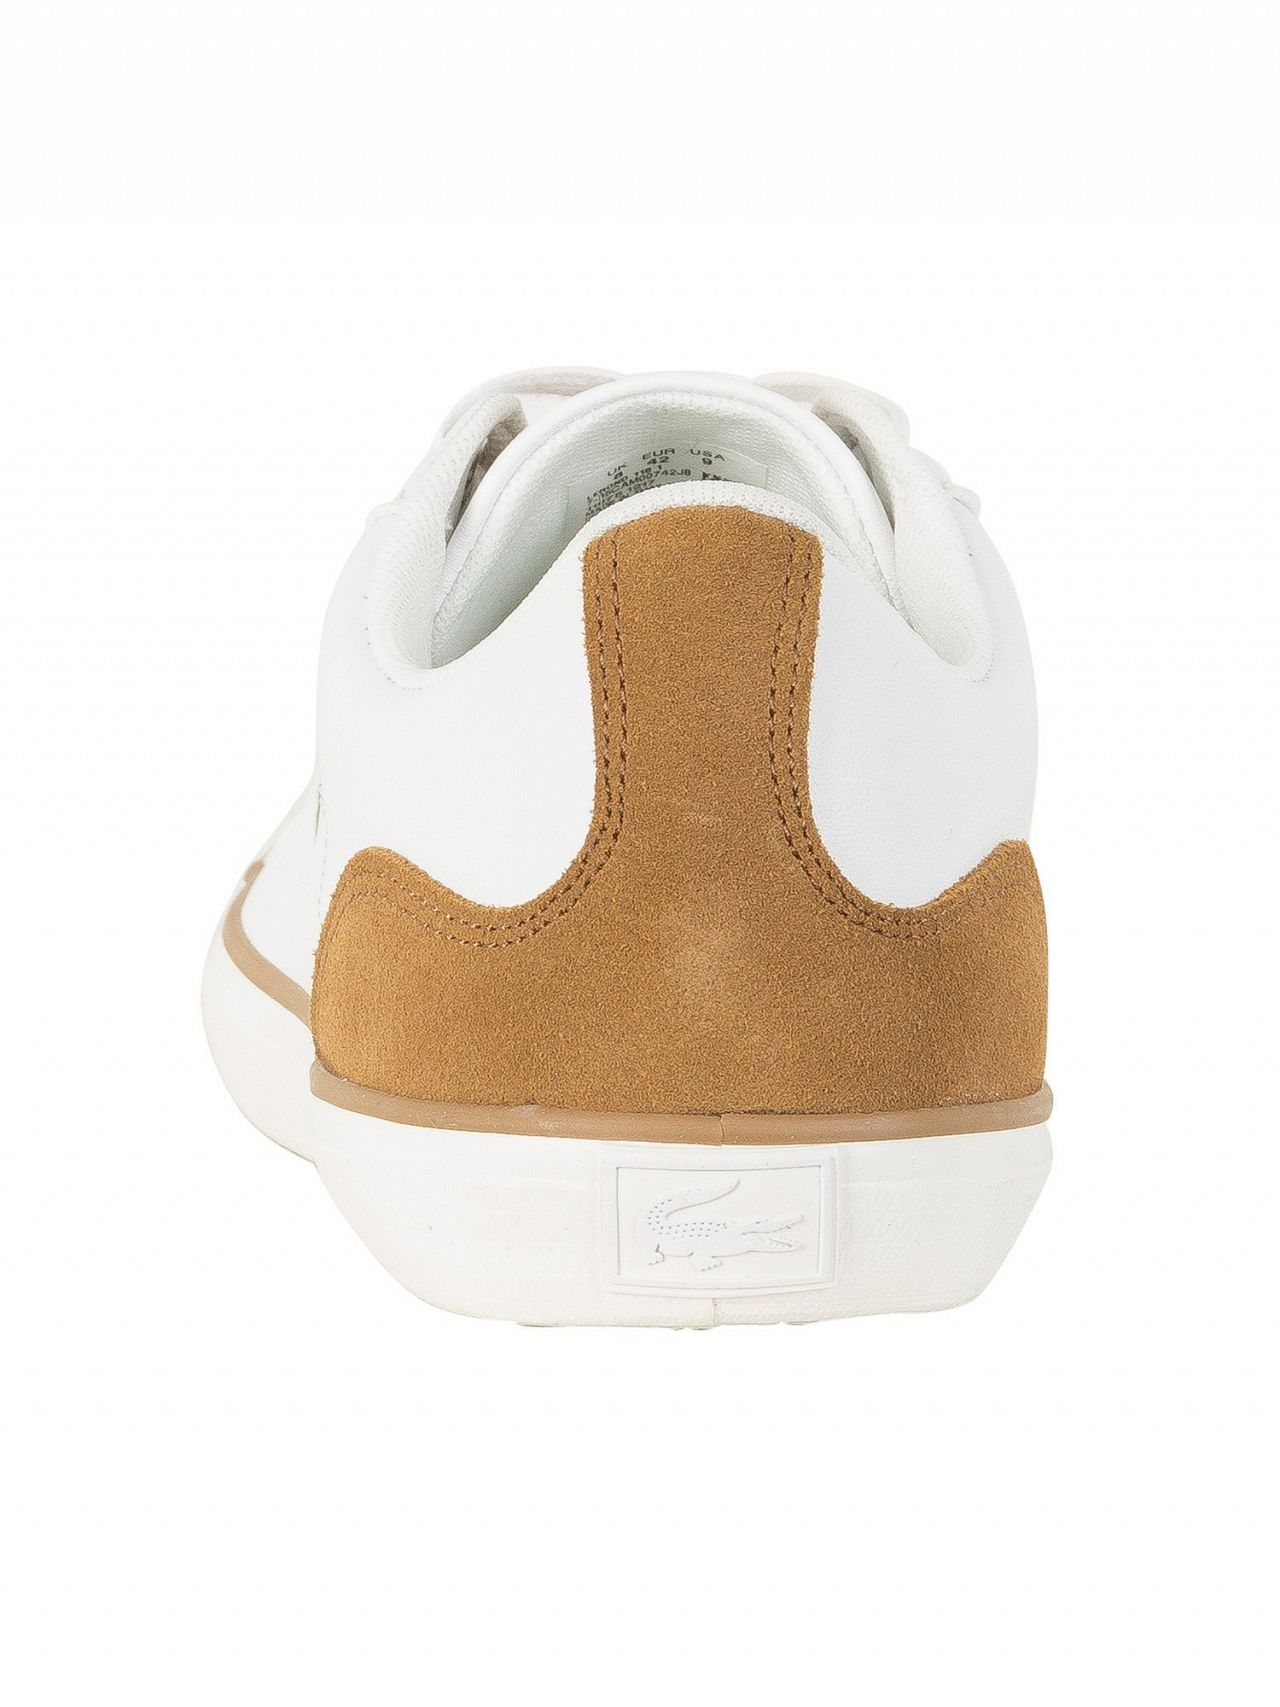 80b807b77 Lacoste White Light Brown Lerond 118 1 CAM Leather Trainers